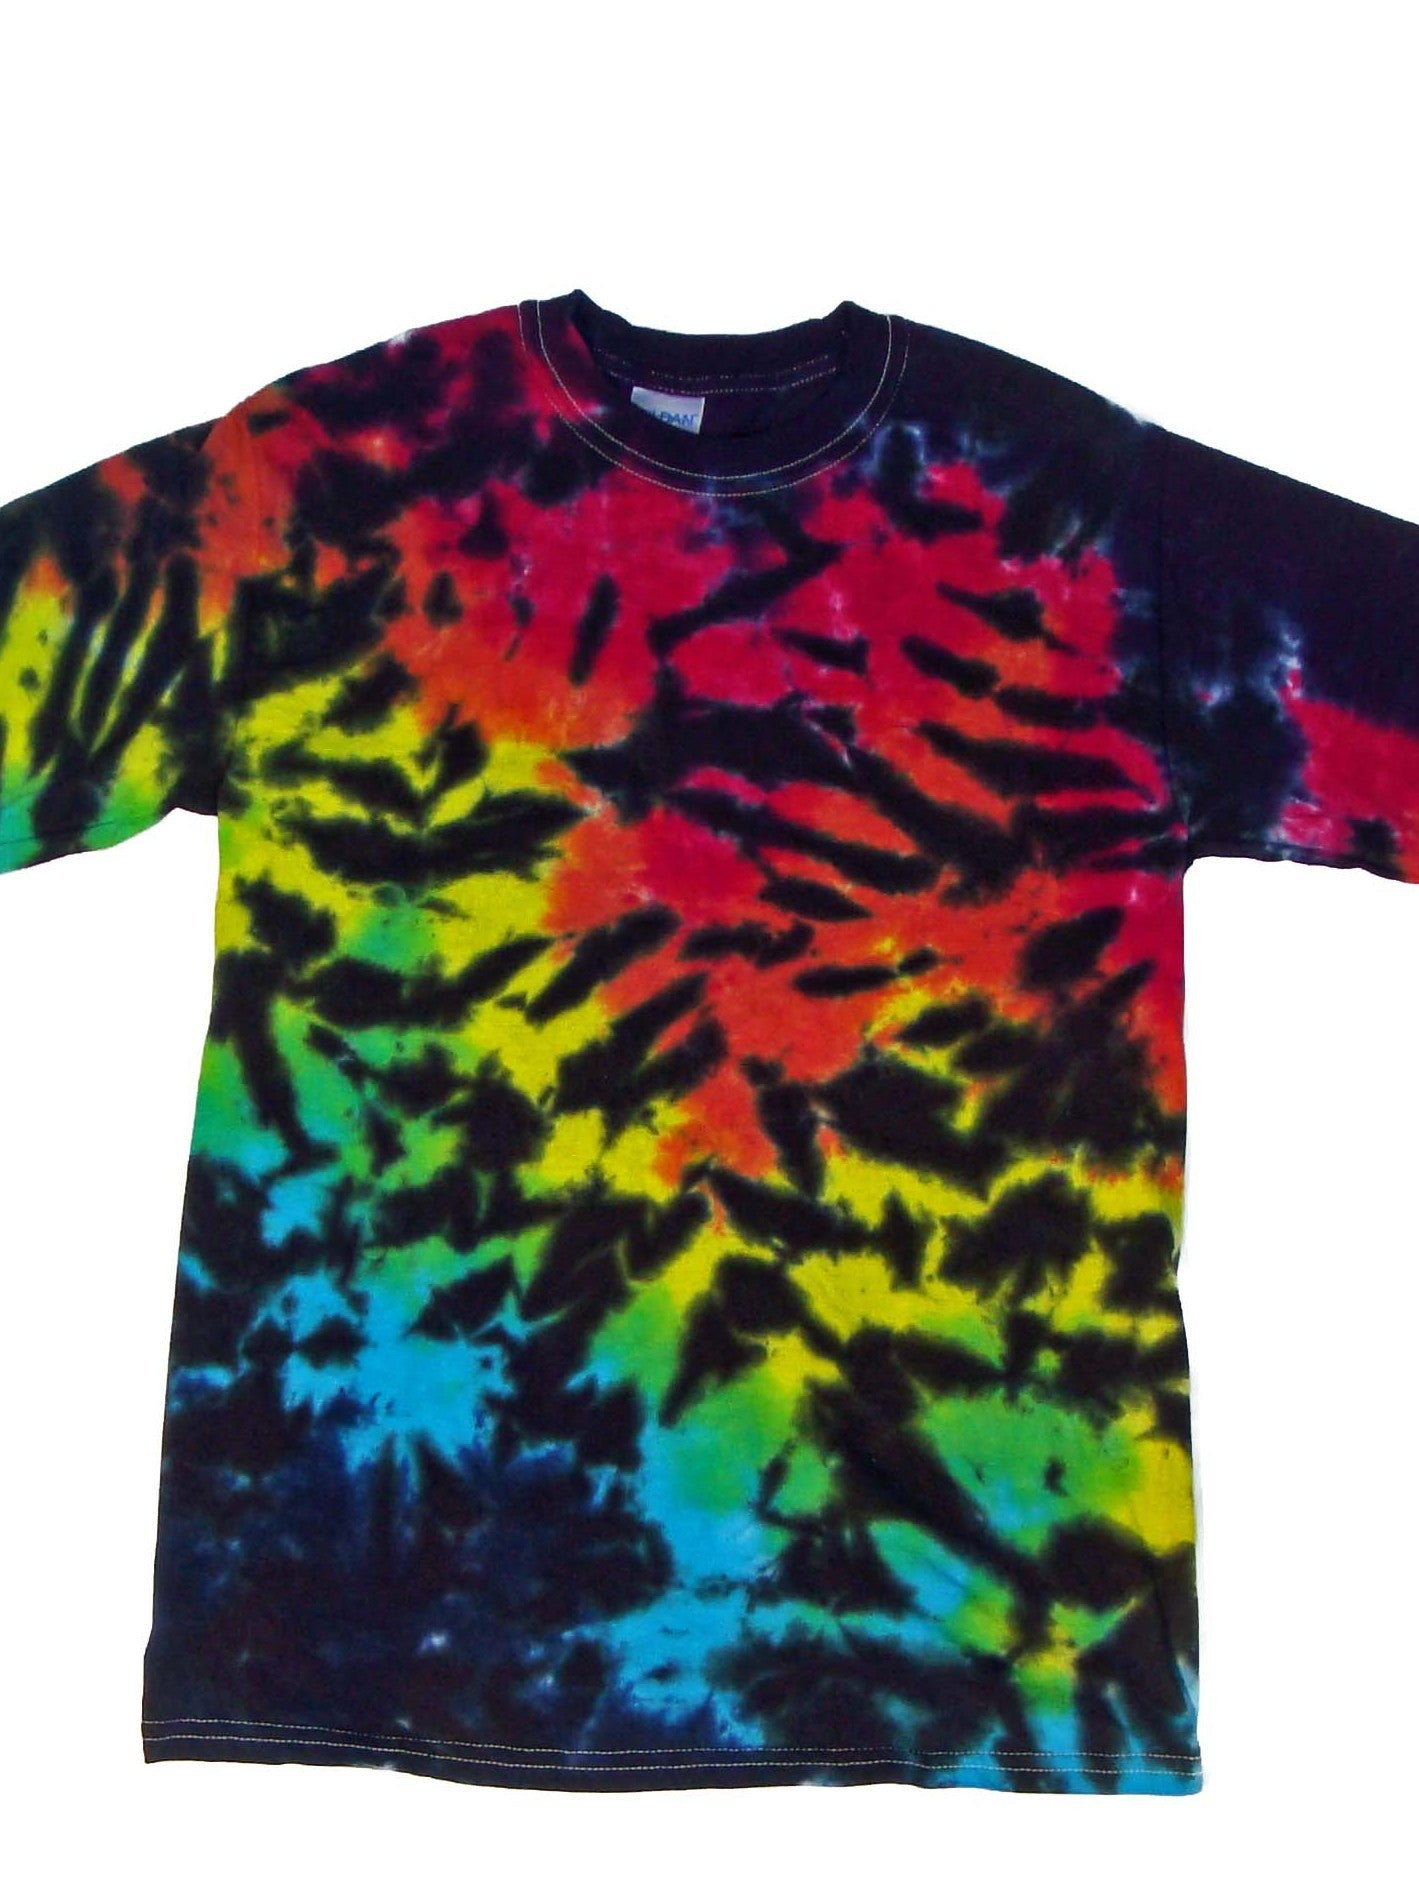 Tiger Print Custom Tie Dye Shirts